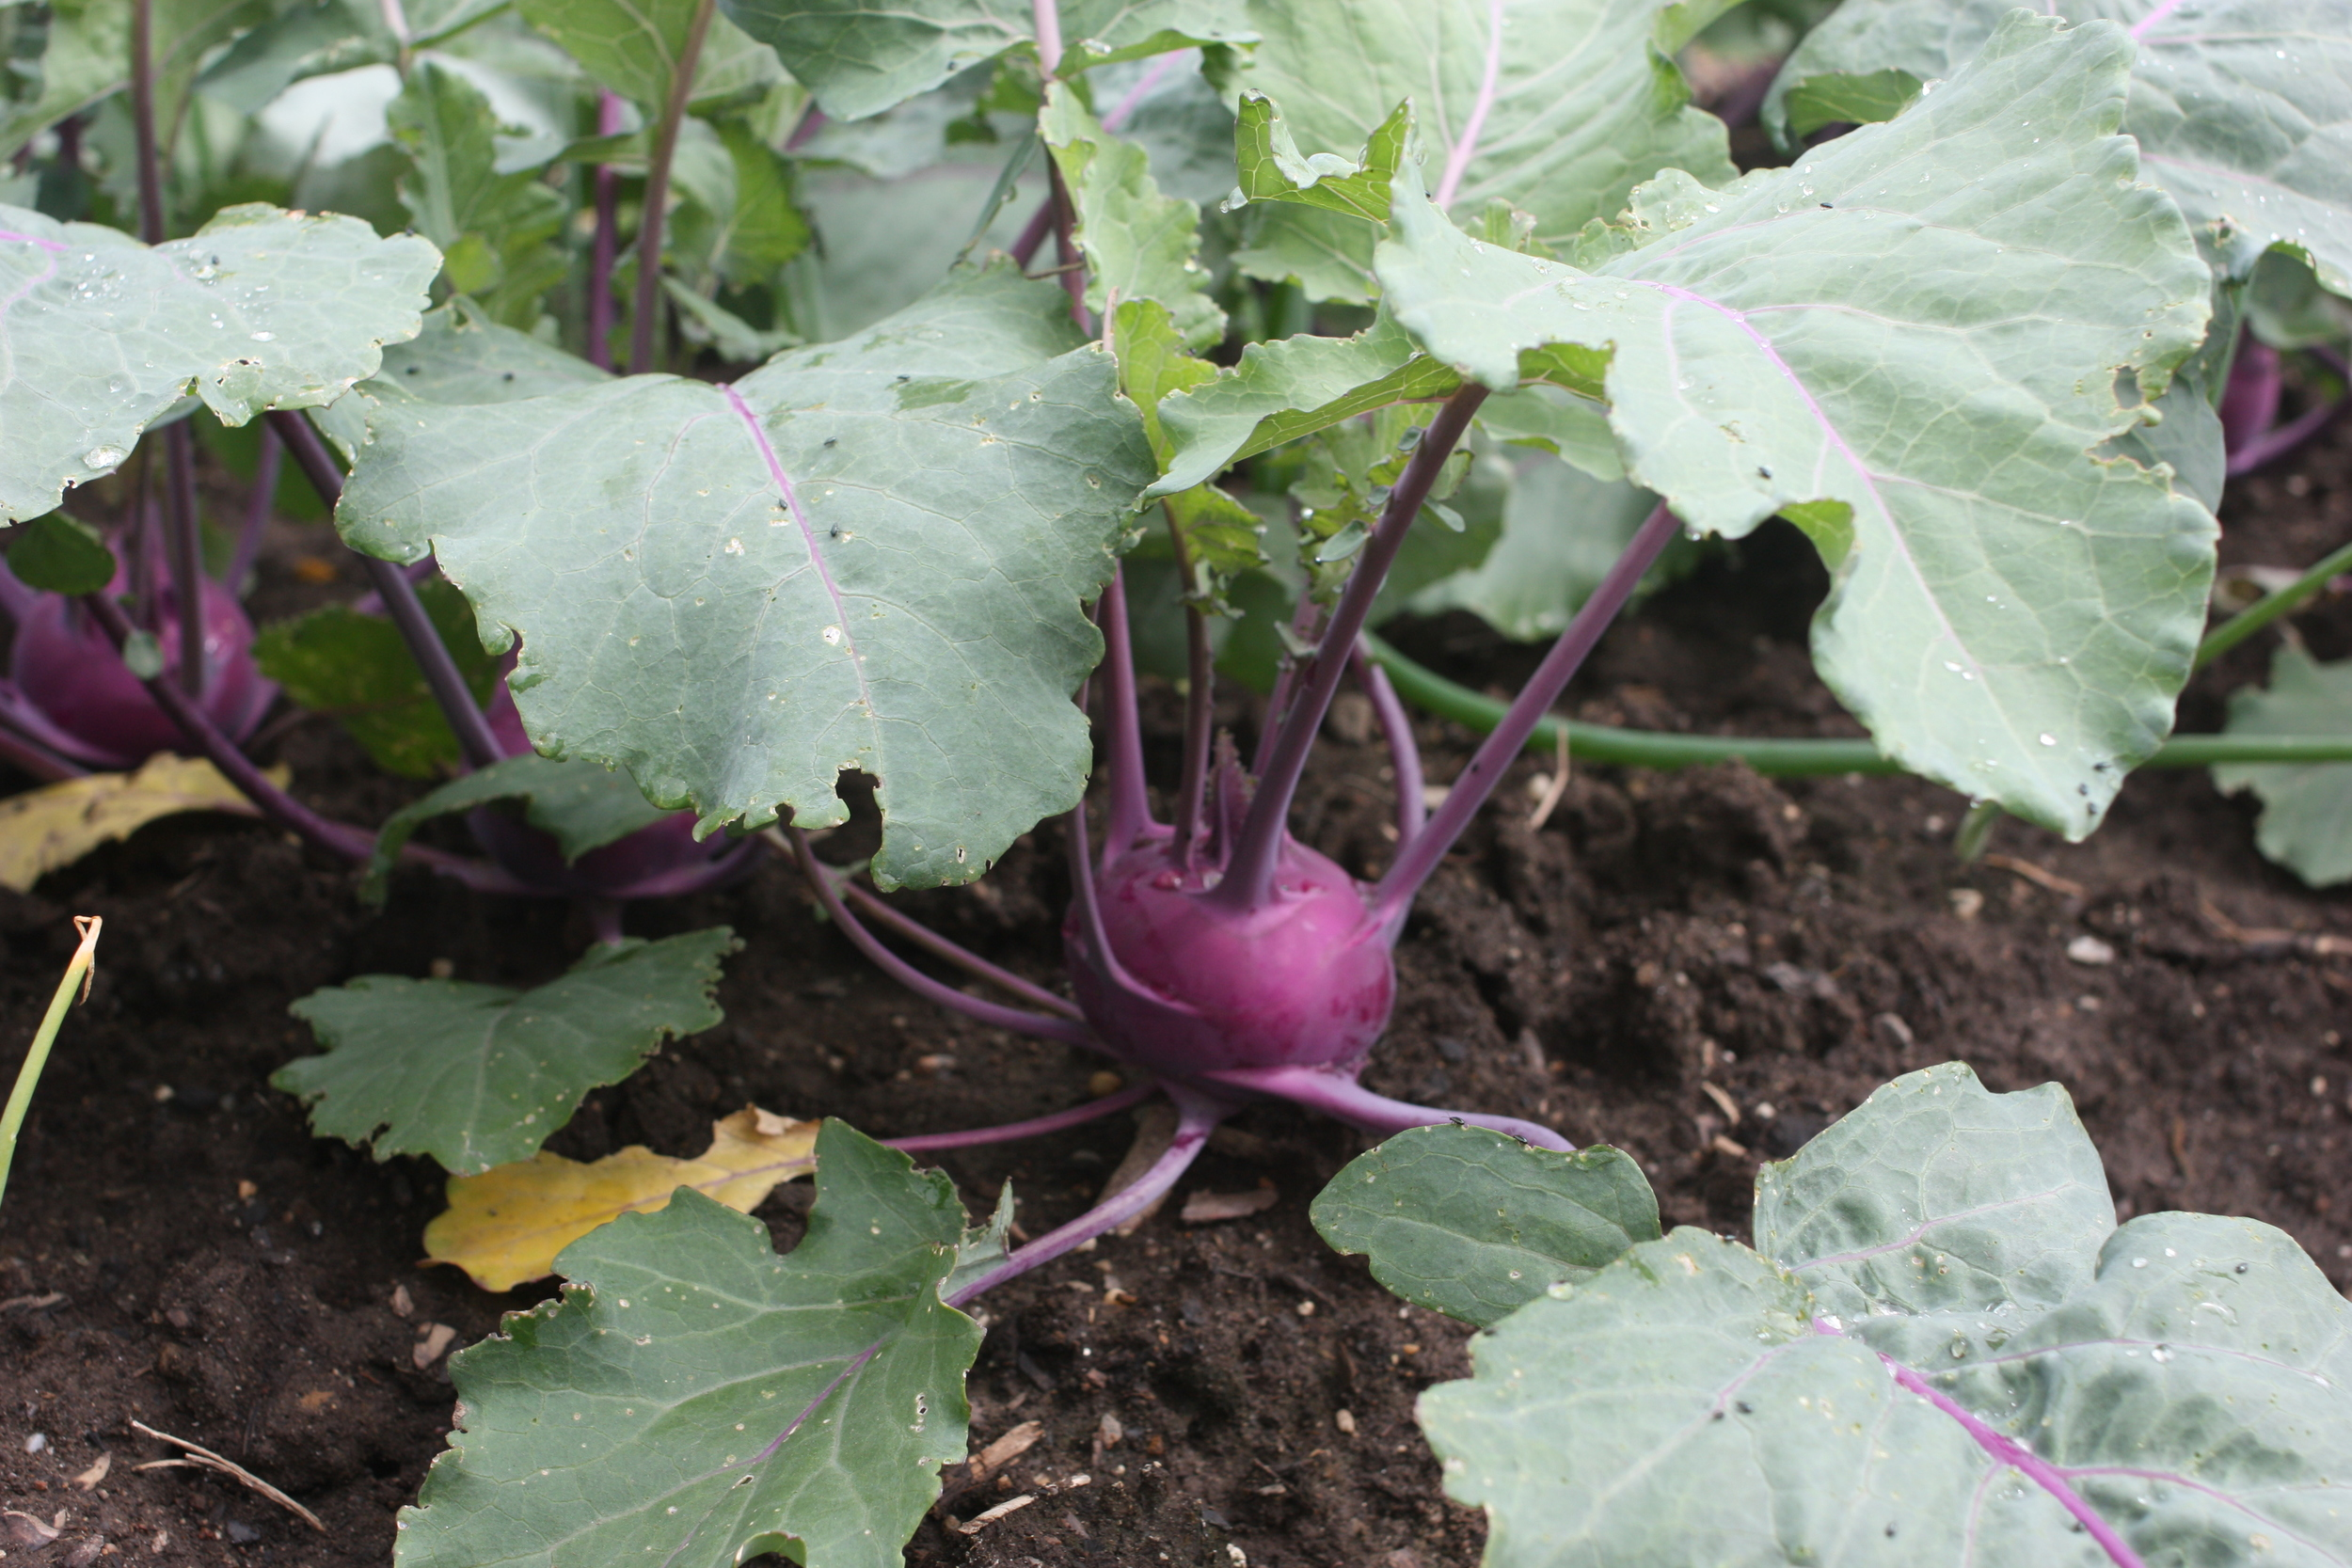 The pretty purple bulbs of kohlrabi 'Kohlibri' are easy to grow, delicious, and worth the 45-day wait.